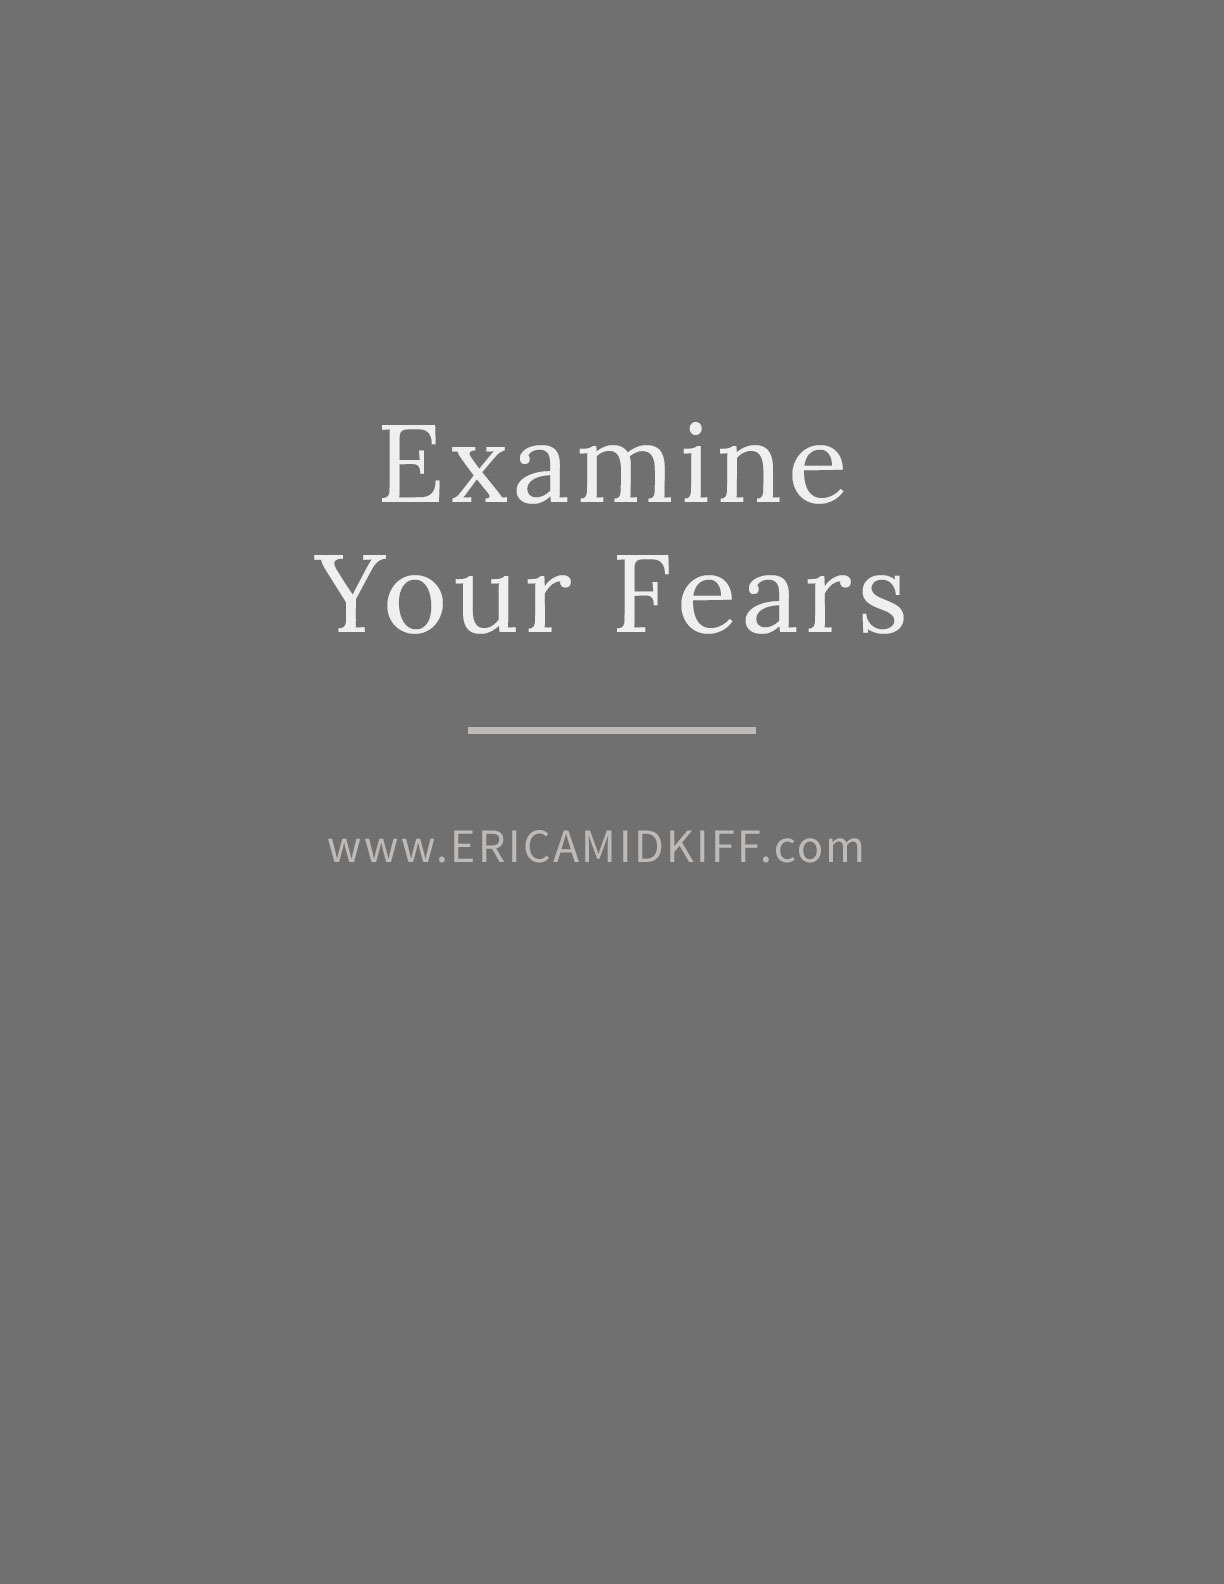 Examine Your Fears - Worksheet by Erica Midkiff.jpg